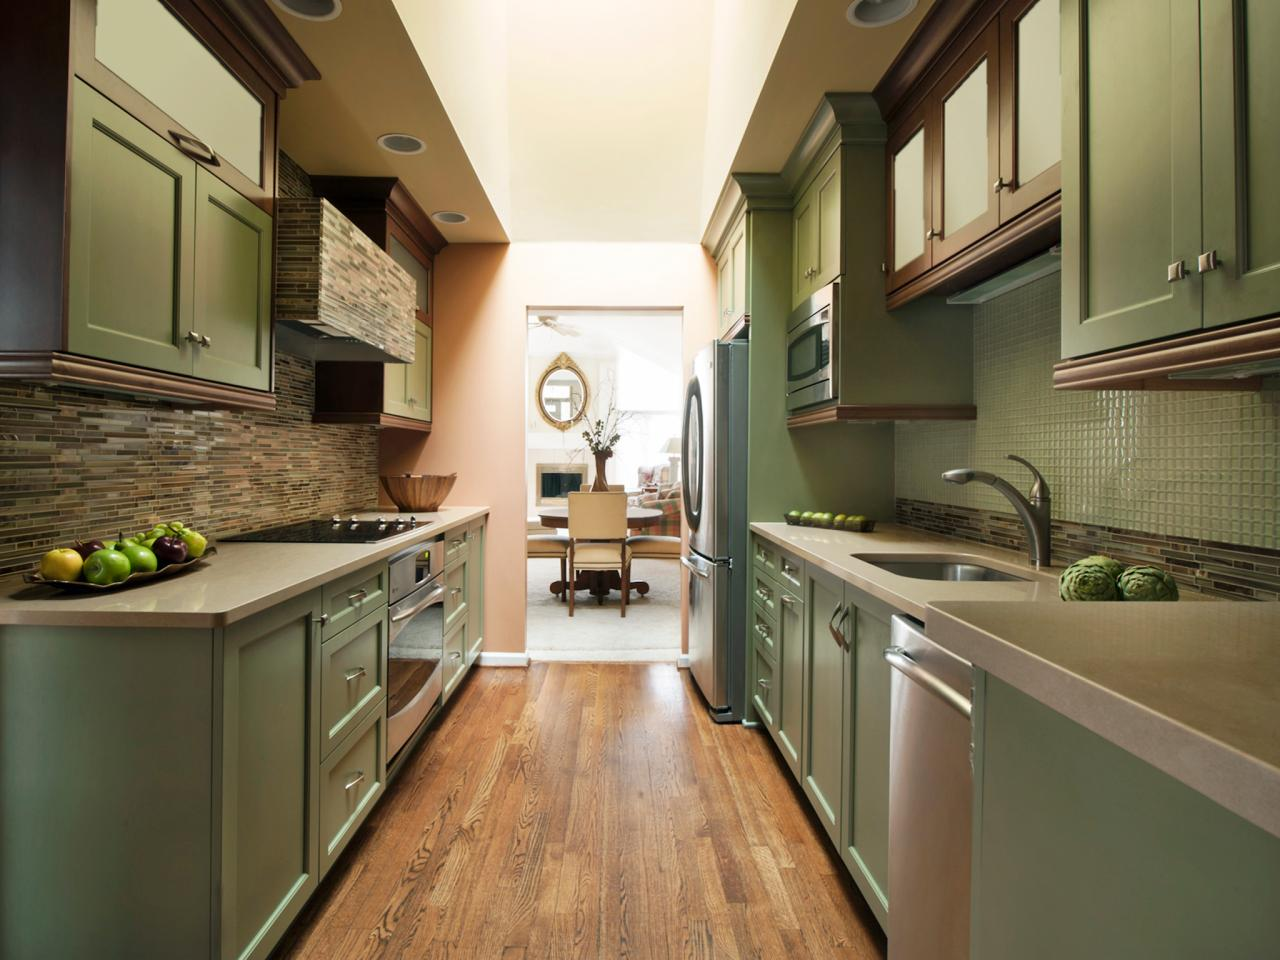 Small Galley Kitchen Renovations Adorable Small Galley Kitchen Design Pictures & Ideas From Hgtv  Hgtv 2017